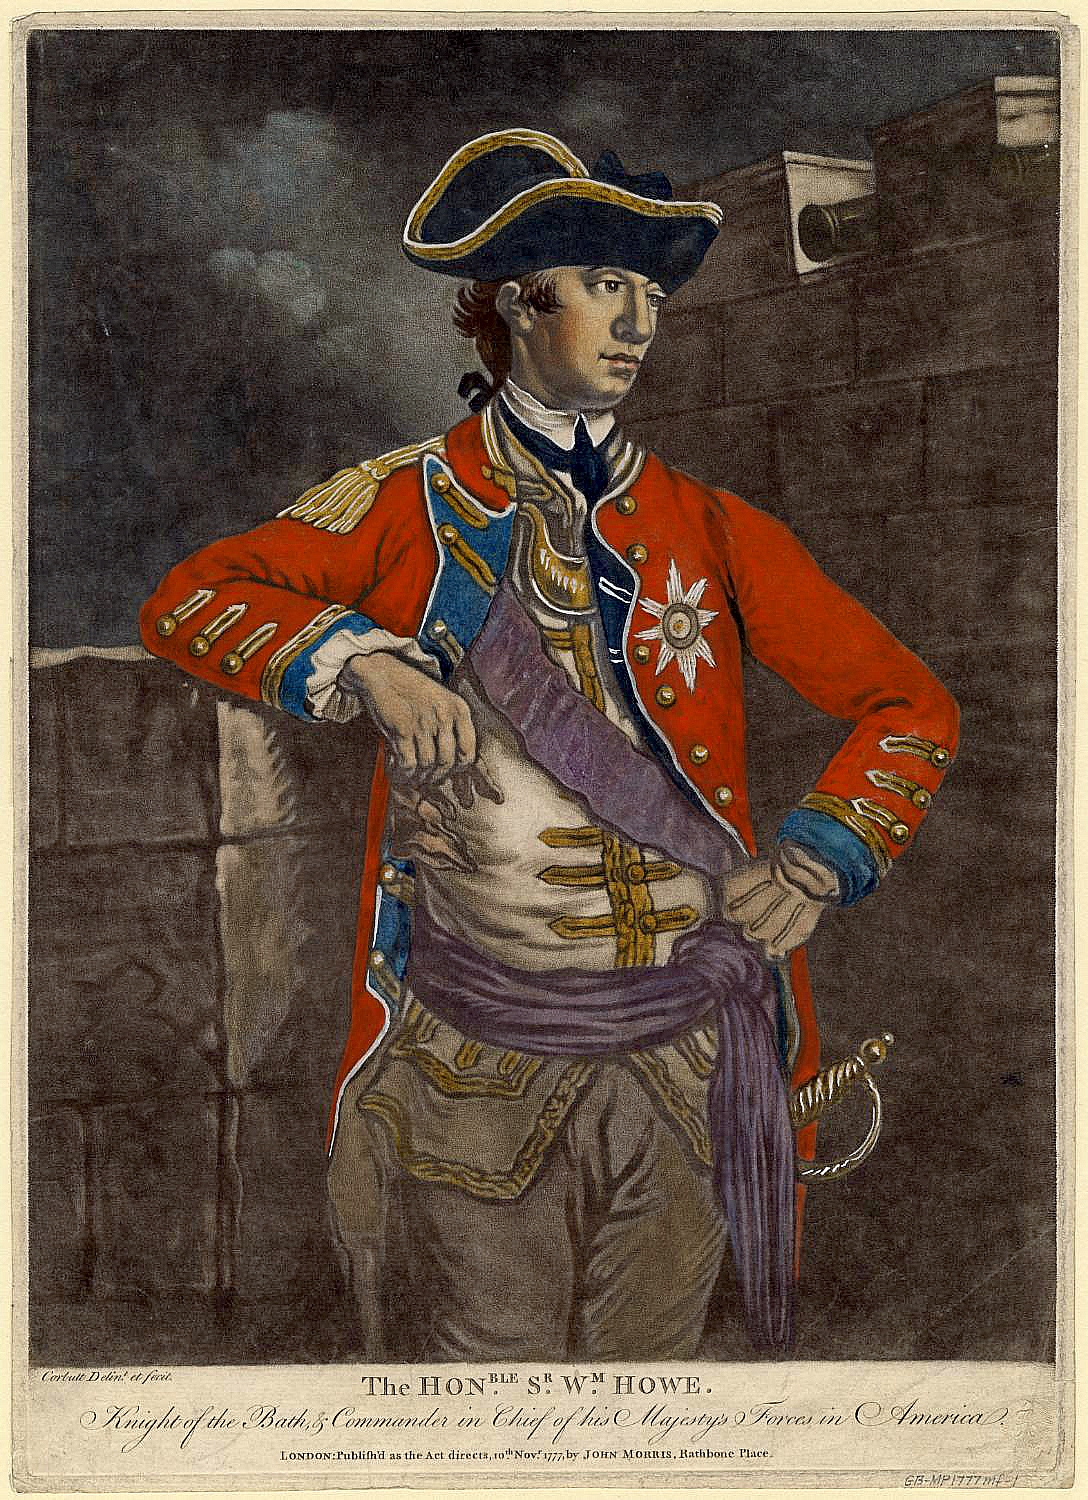 Color mezzotint of General Sir William Howe, 5th Viscount Howe, created by Richard Purcell aka Charles Corbutt in November 1777. From the Anne S.K. Brown Military History Collection at Brown University.